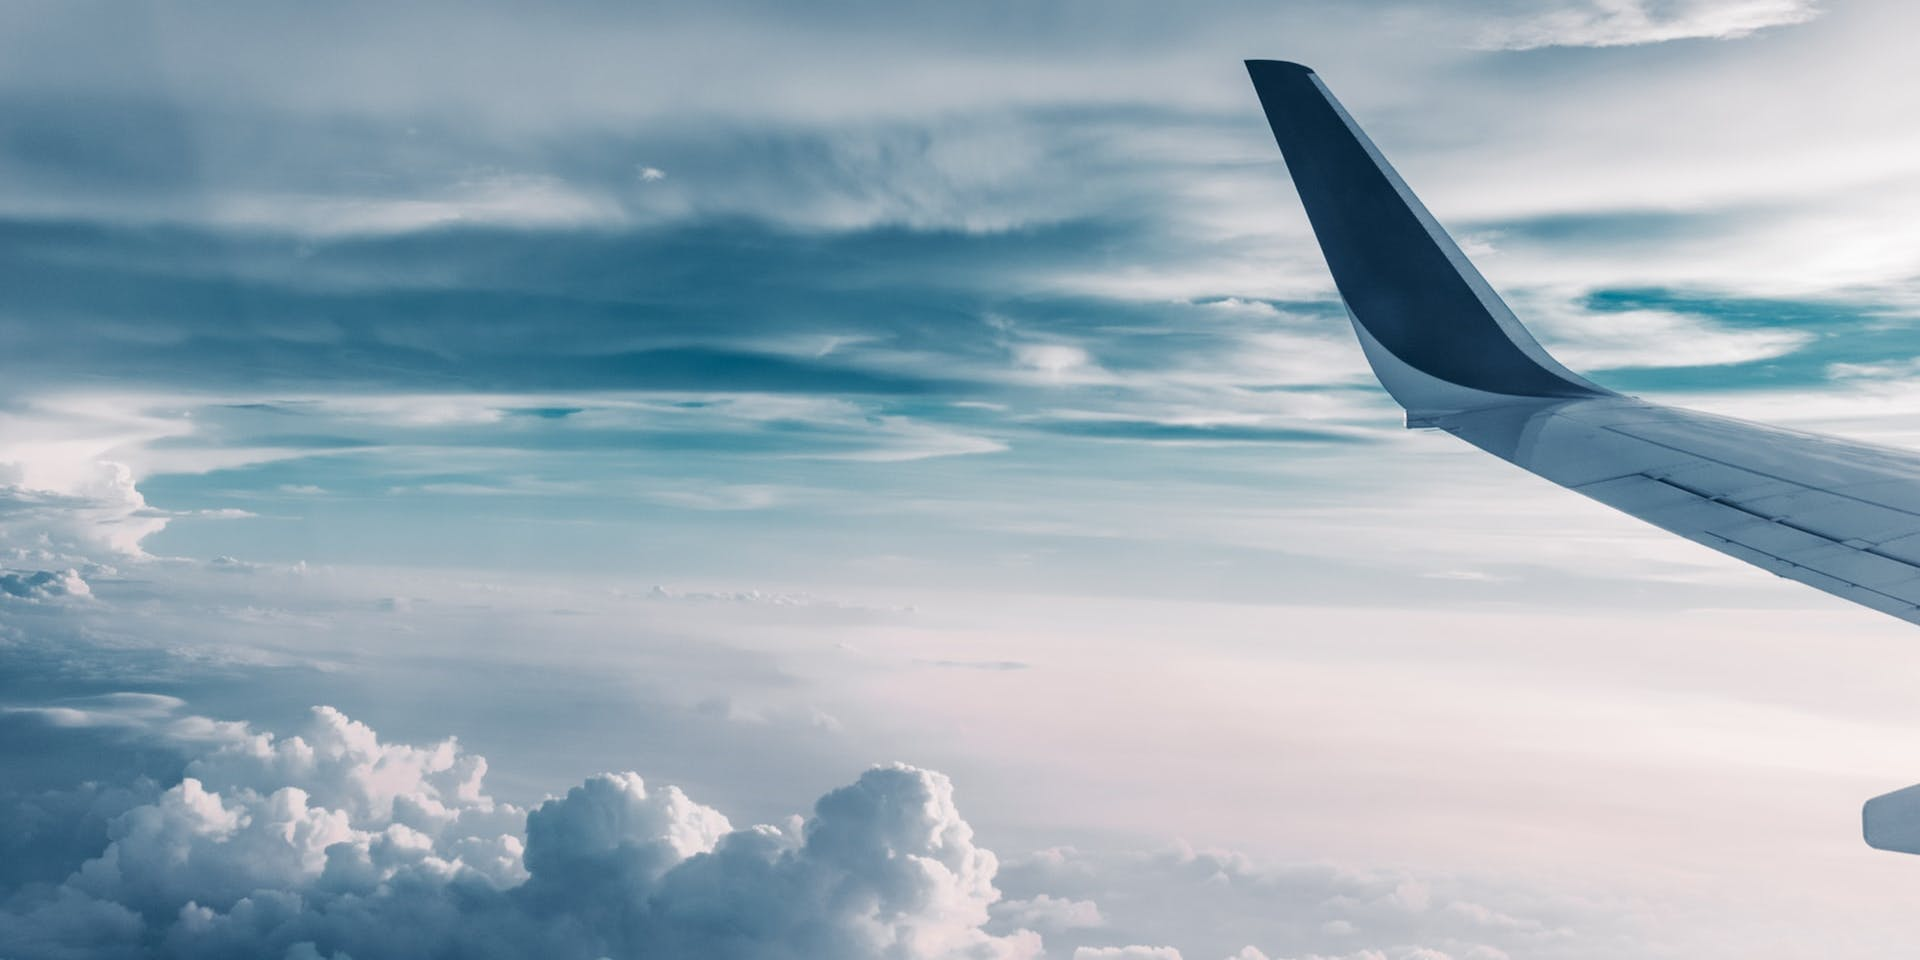 Building a truly sustainable aviation industry